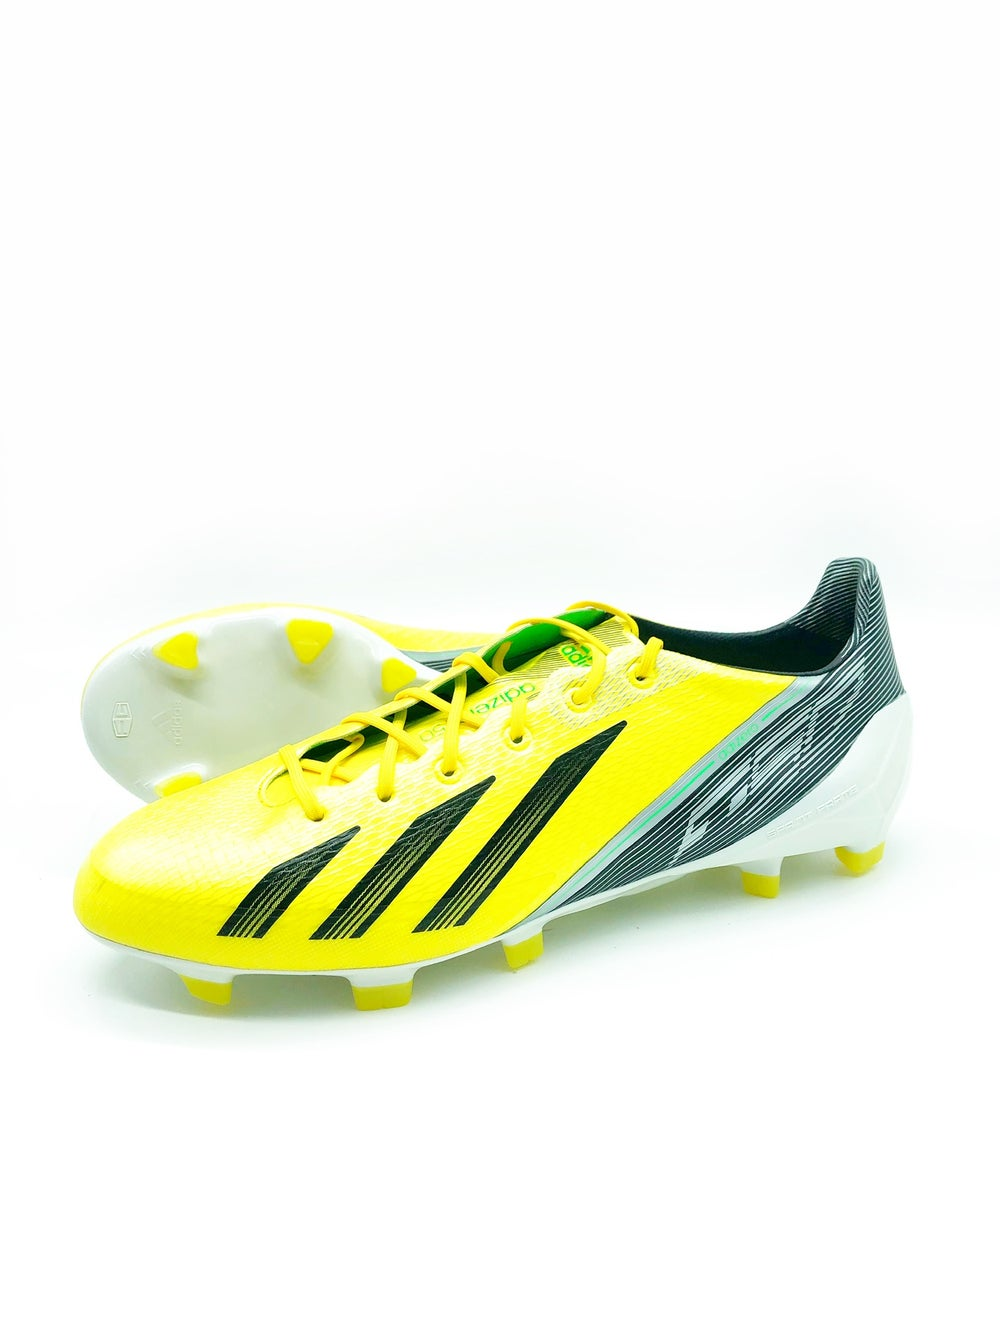 Image of Adidas F50 Yellow FG